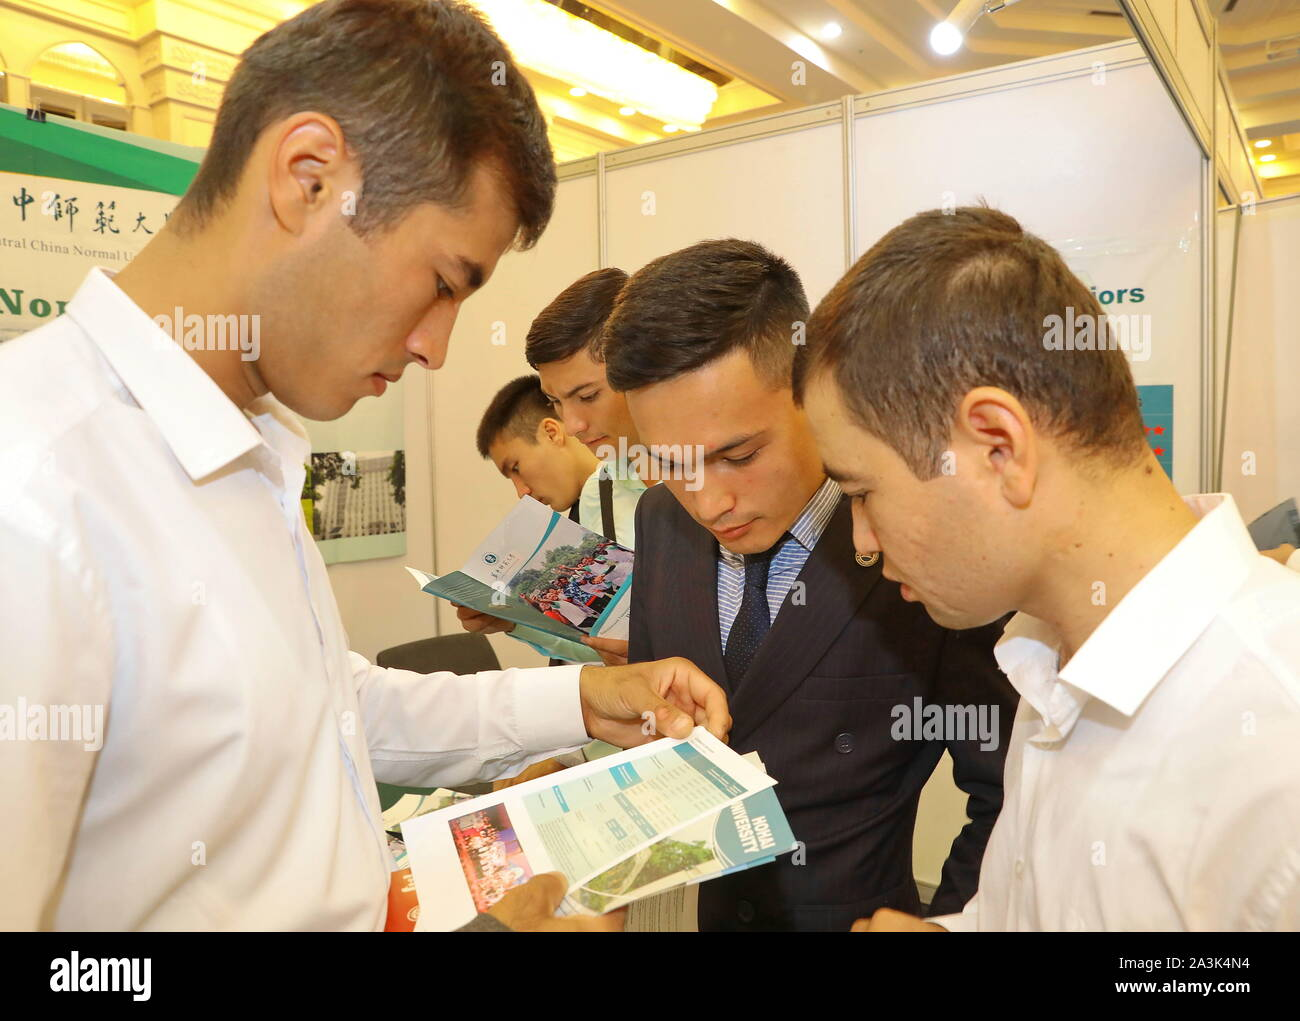 Tashkent, Uzbekistan. 8th Oct, 2019. Uzbek students read enrollment guides at an exhibition on higher education in China, in Tashkent, Uzbekistan, Oct. 8, 2019. An exhibition on higher education in China opened here Tuesday to familiarize Uzbeks with opportunities to study abroad in the East Asian country. Organizers said 30 leading higher educational institutions of China were presented at the event. Credit: Zafar Khalilov/Xinhua/Alamy Live News Stock Photo